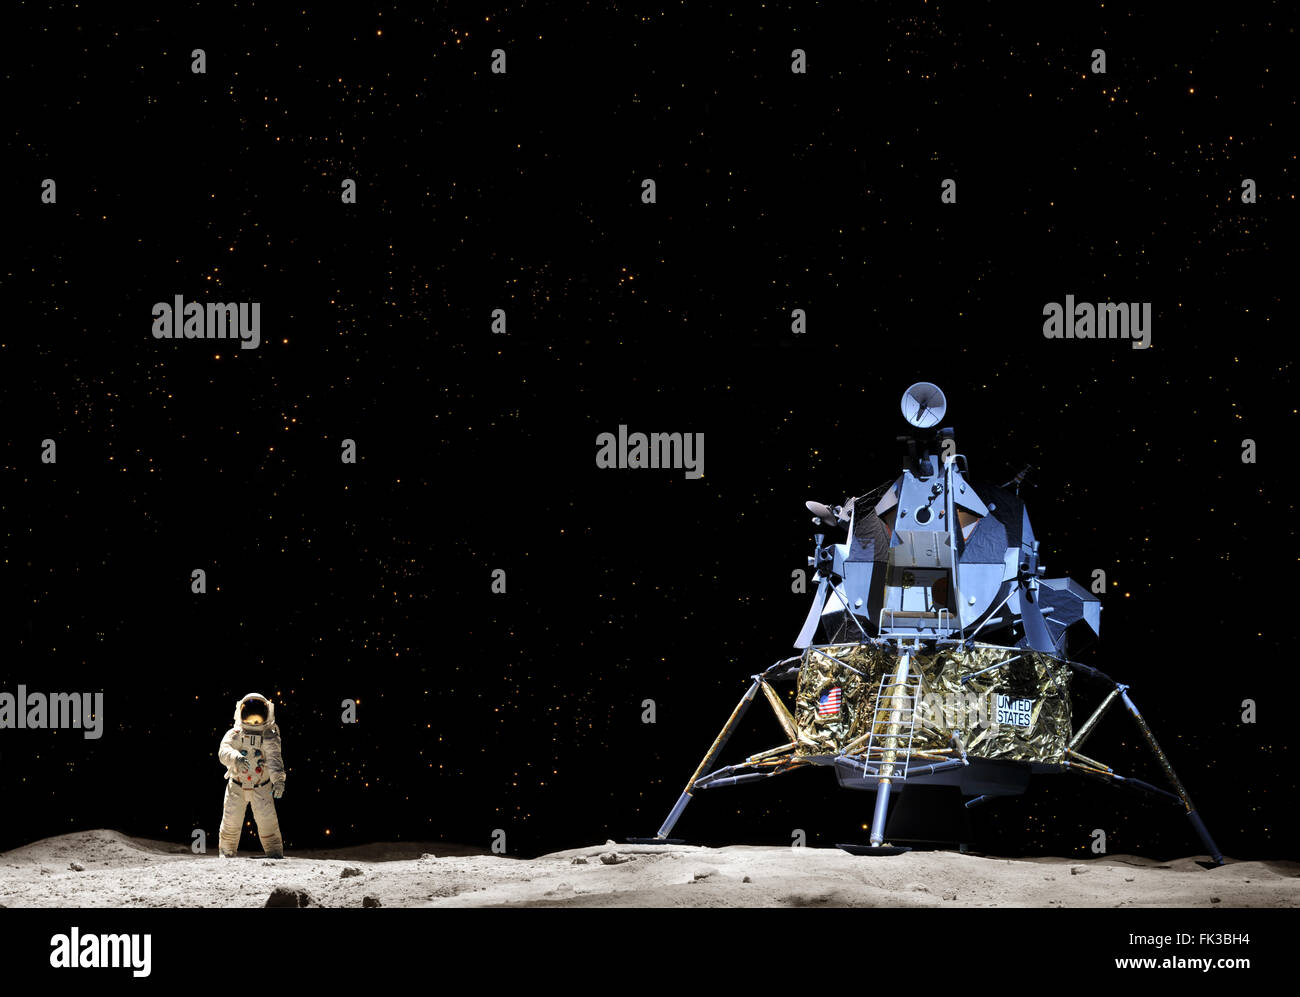 CAPE CANAVERAL, FL- JAN 2: Prototype of the Apollo 17 landing on the moon displayed at NASA, Kennedy Space Center - Stock Image